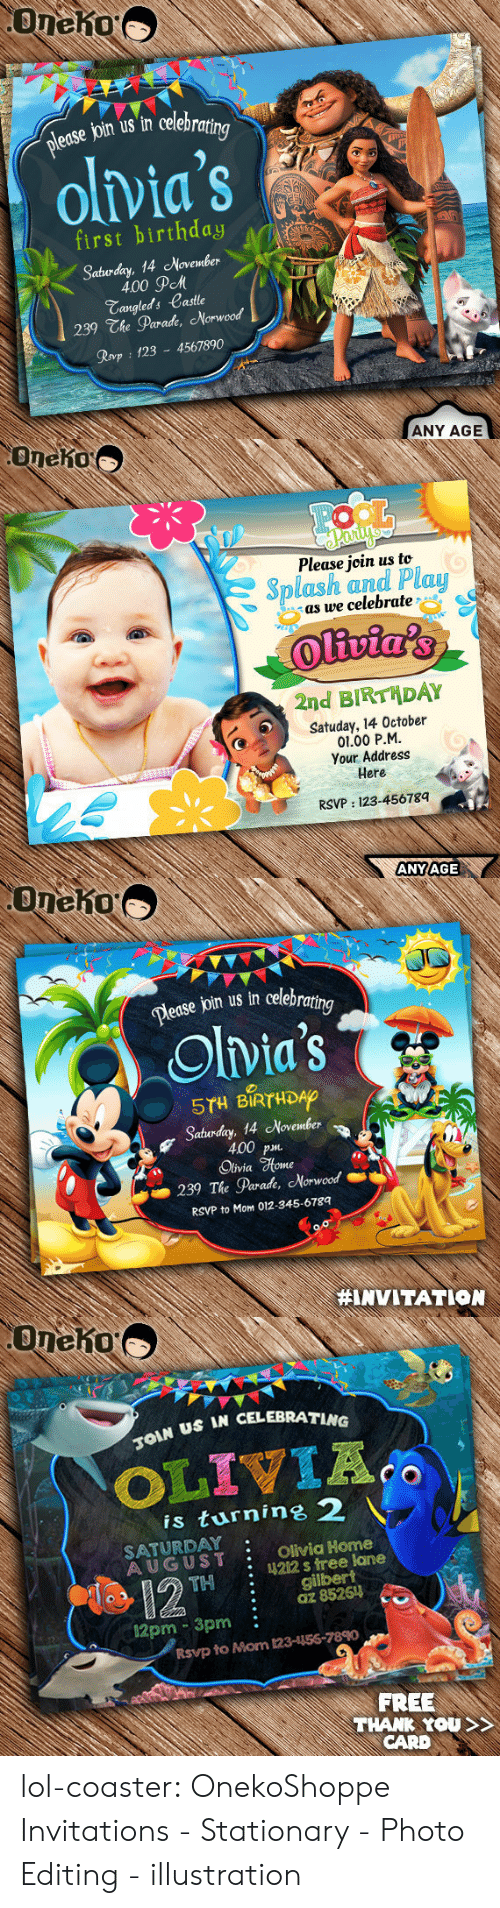 invitations: edse join us in celebra  olvia's  first birthday  Sabuday, 14 November  \  400 дем  Tangleds Castle  239 The Parade, Norwood  Rovp 123 4567890  ANY AGE   Oneho  Please join us to  Splash and Plau  as we celebrate  2nd BIRTHDAY  Satuday, 14 October  01.00 P.M  Your Address  Here  RSVP: 123-45678q  ANYAGE   Dease join us in celebra  ing  Olvia's  5TH BIRTHDAO  Saturday, 14 November  400 p  Olivia %one  239 The Parade, Morwood  RSVP to Mom 012-345-6789  #INVITATION   US IN CELEBRATING  is turnine 2  SATURDAY  AUGUST Olivia Home  : 4212 s tree lane  THgilbert  :az 85261  12pm 3pm:  Rsvp to Mom 123-156-7890  FREE  THANK YOU  CARD lol-coaster:  OnekoShoppe Invitations - Stationary - Photo Editing - illustration